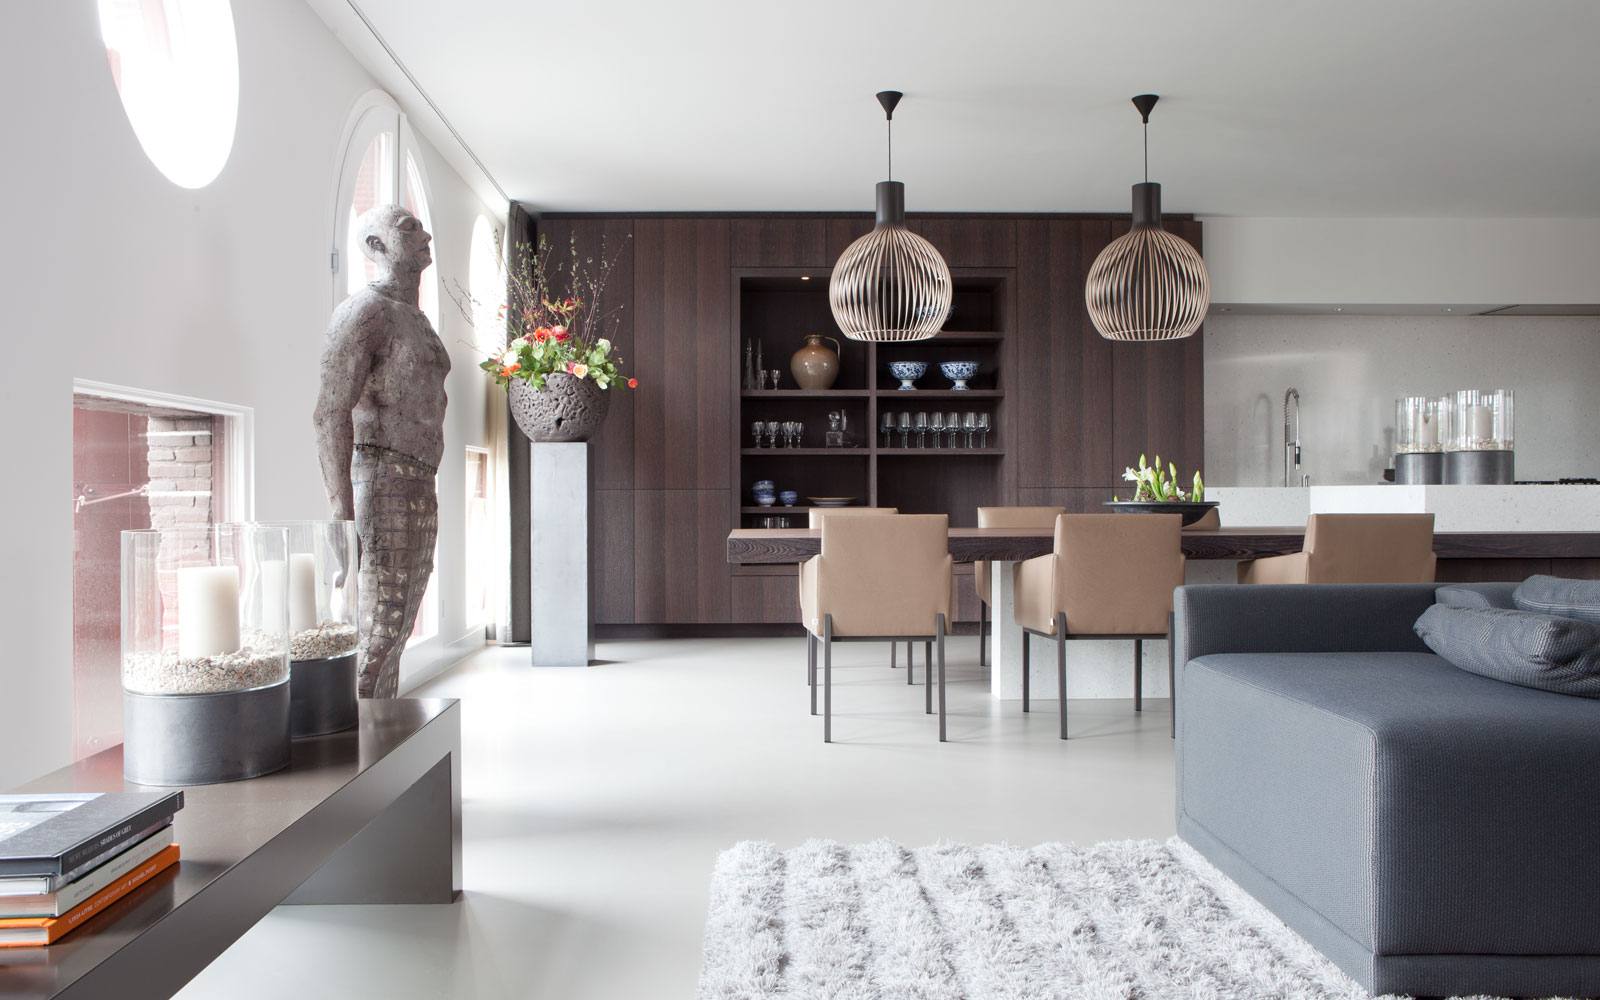 Penthouse | Remy Meijers | The Art of Living (NL)